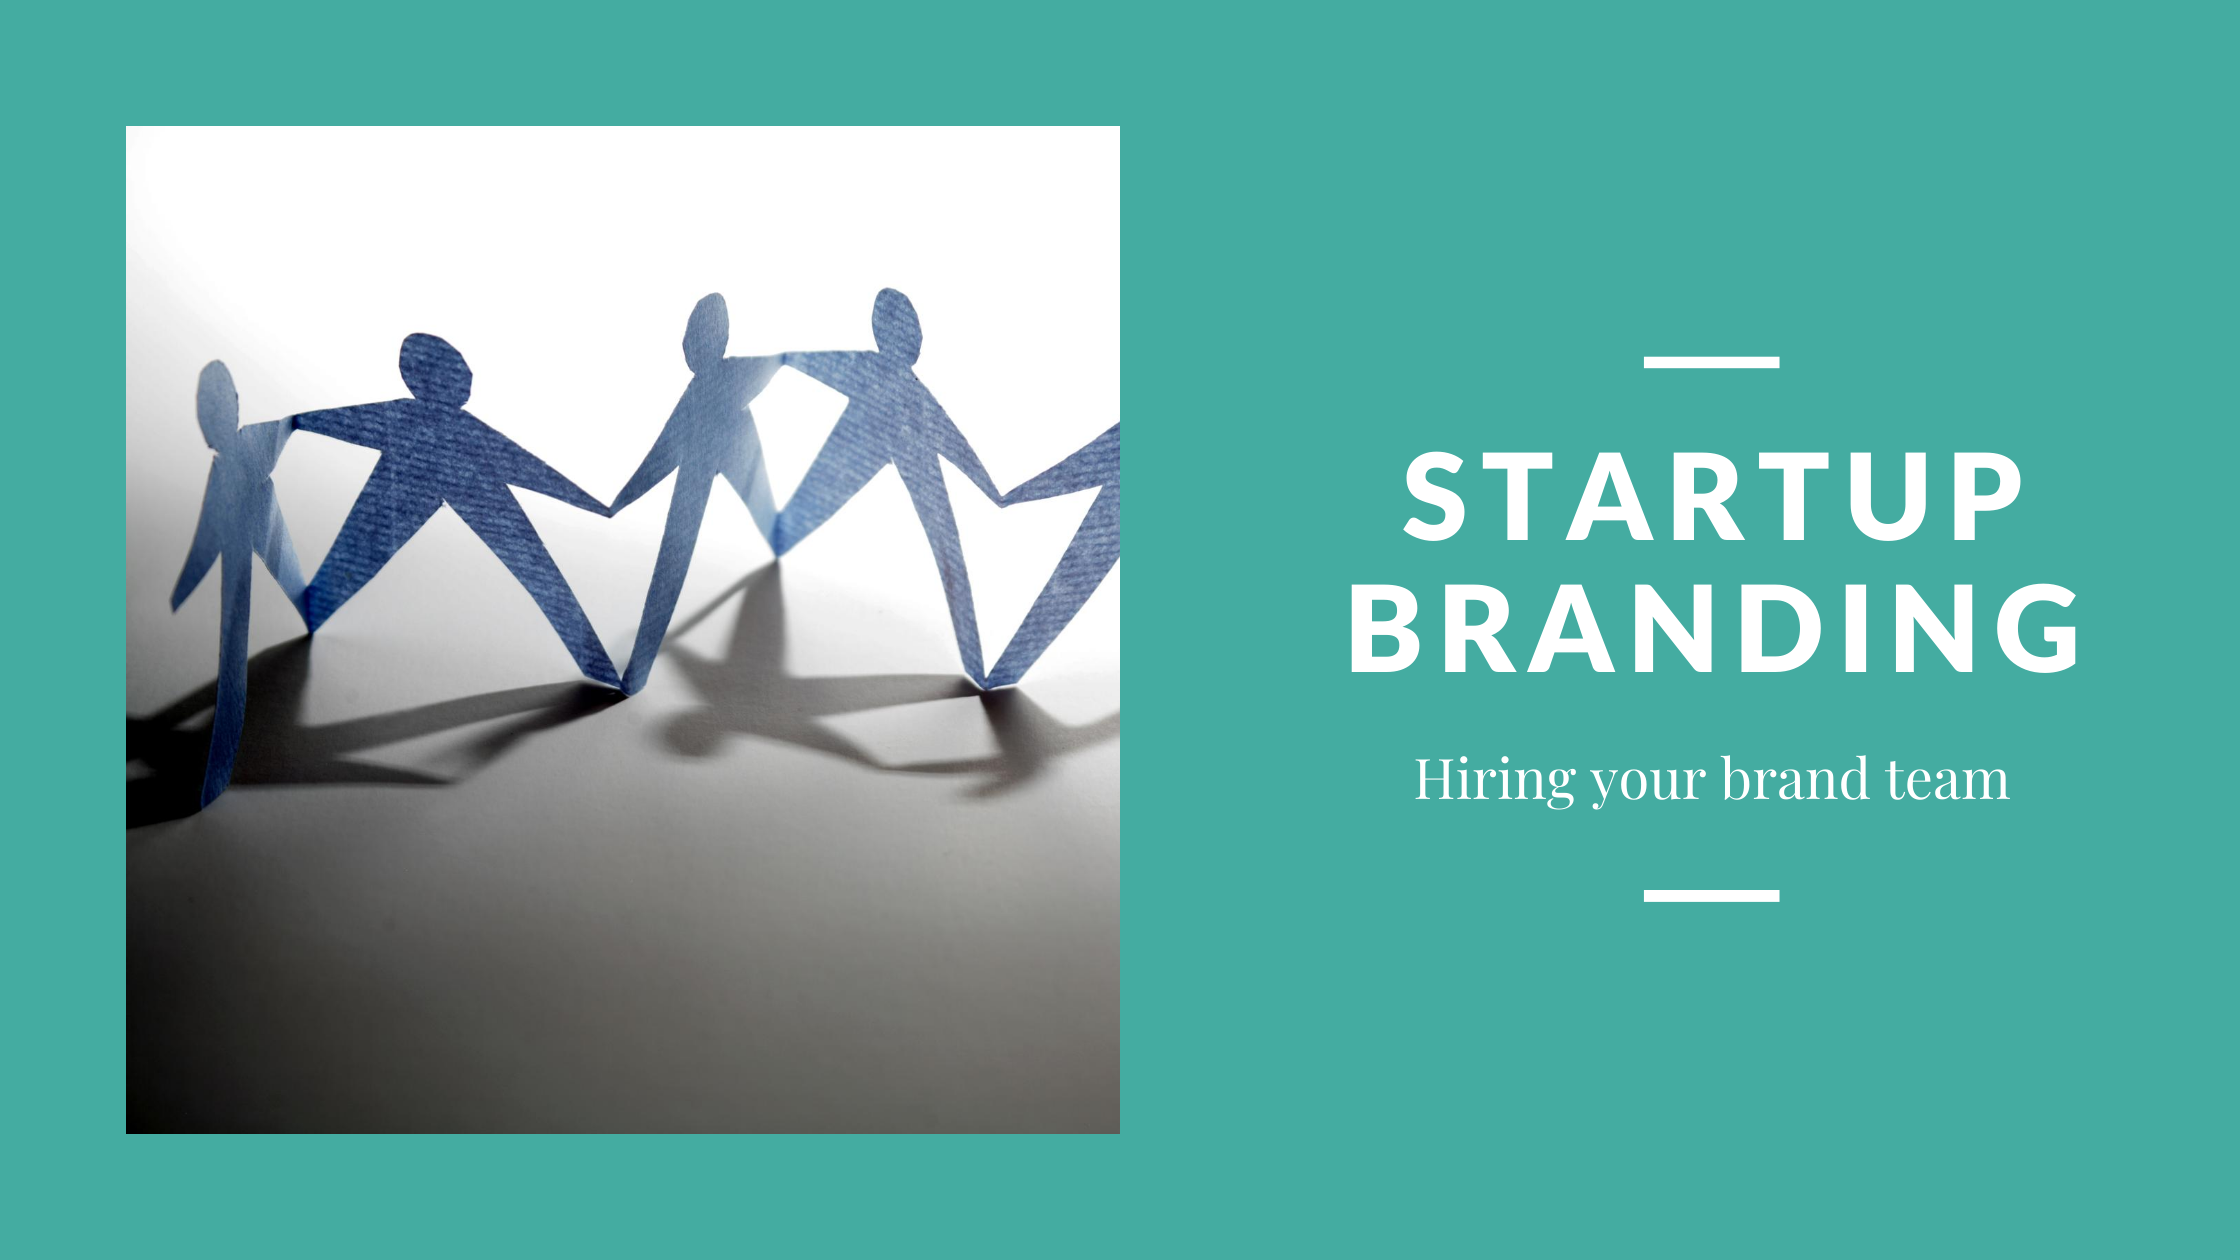 Startup branding: 5 functional skills you need to look for when hiring a branding specialist